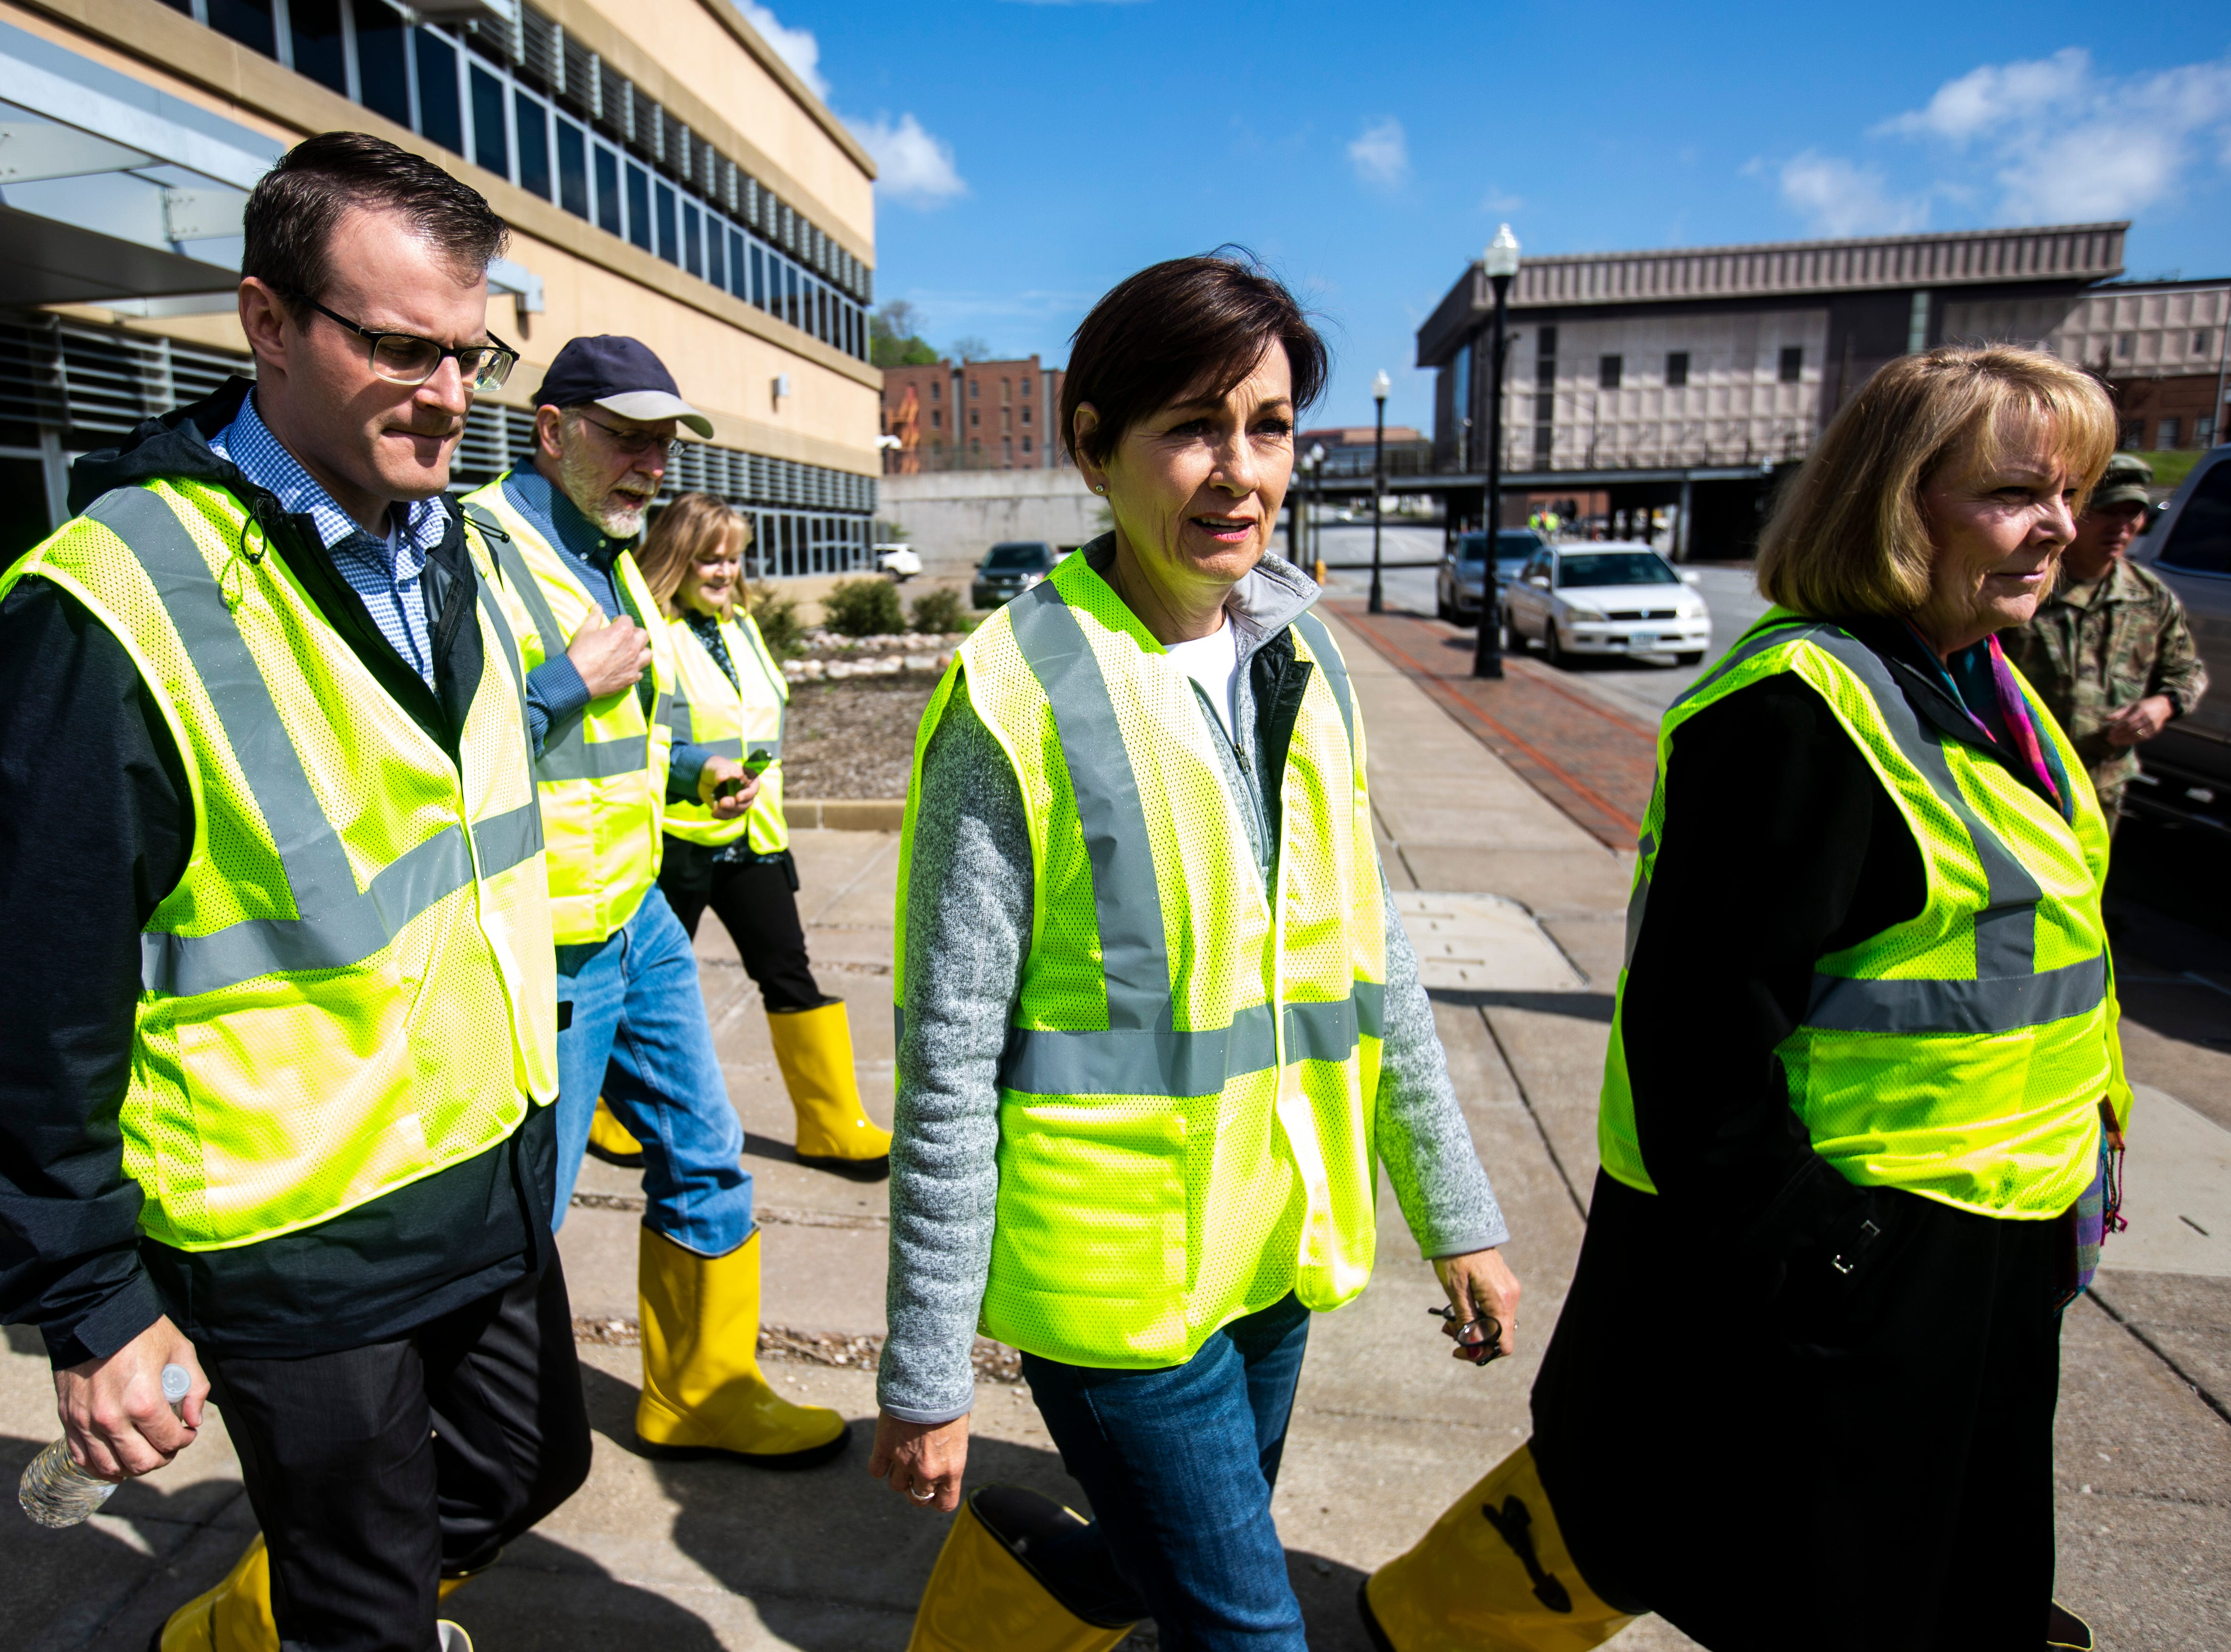 Iowa Gov. Kim Reynolds, second from right, walks out of the police station before taking a tour of areas impacted by floodwater, with Lt. Gov. Adam Gregg, far left, and U.S. Rep. Dave Loebsack, D-Iowa, Friday, May 3, 2019, in downtown Davenport, Iowa.